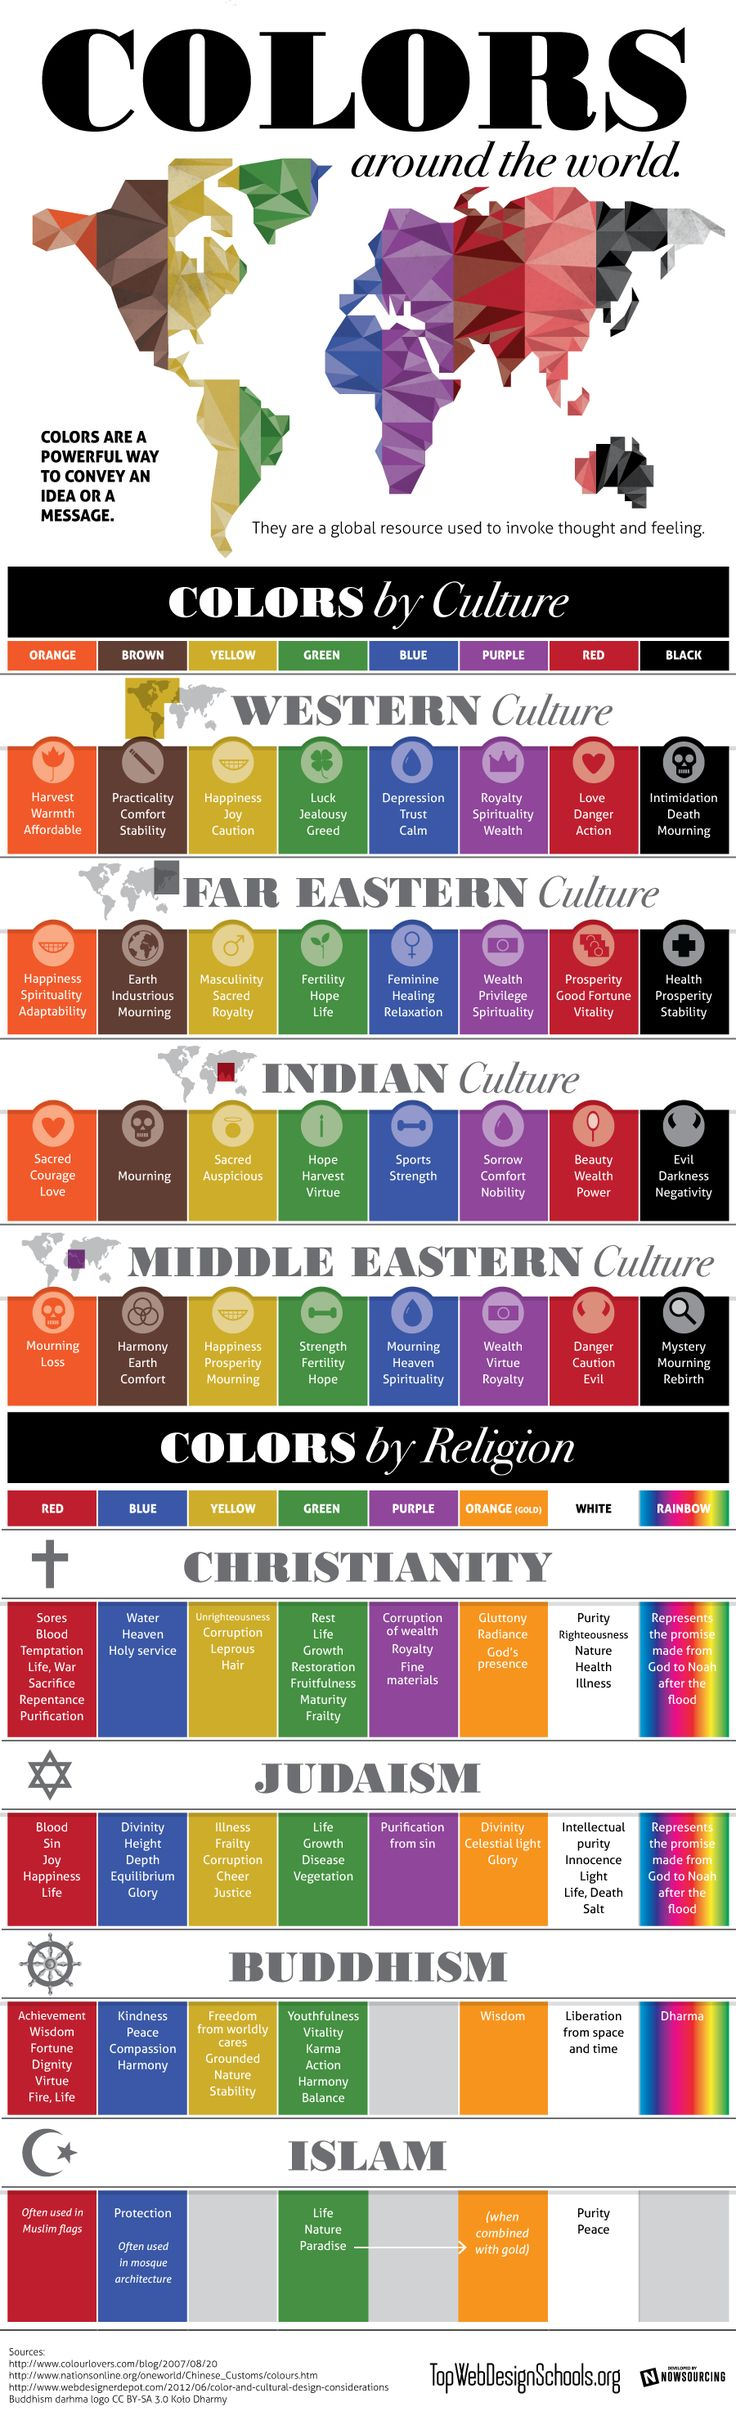 Color Perception by Culture : Color has long be used to implicitly or explicitly transmit and communicate  ideas or messages. But do we all receive the same signals regardless of our origin and beliefs ? This chart puts color on the map and presents color perception among various cultures and religions.  > http://infographicsmania.com/color-perception-by-culture/?utm_source=Pinterest&utm_medium=ZAKKAS&utm_campaign=SNAP